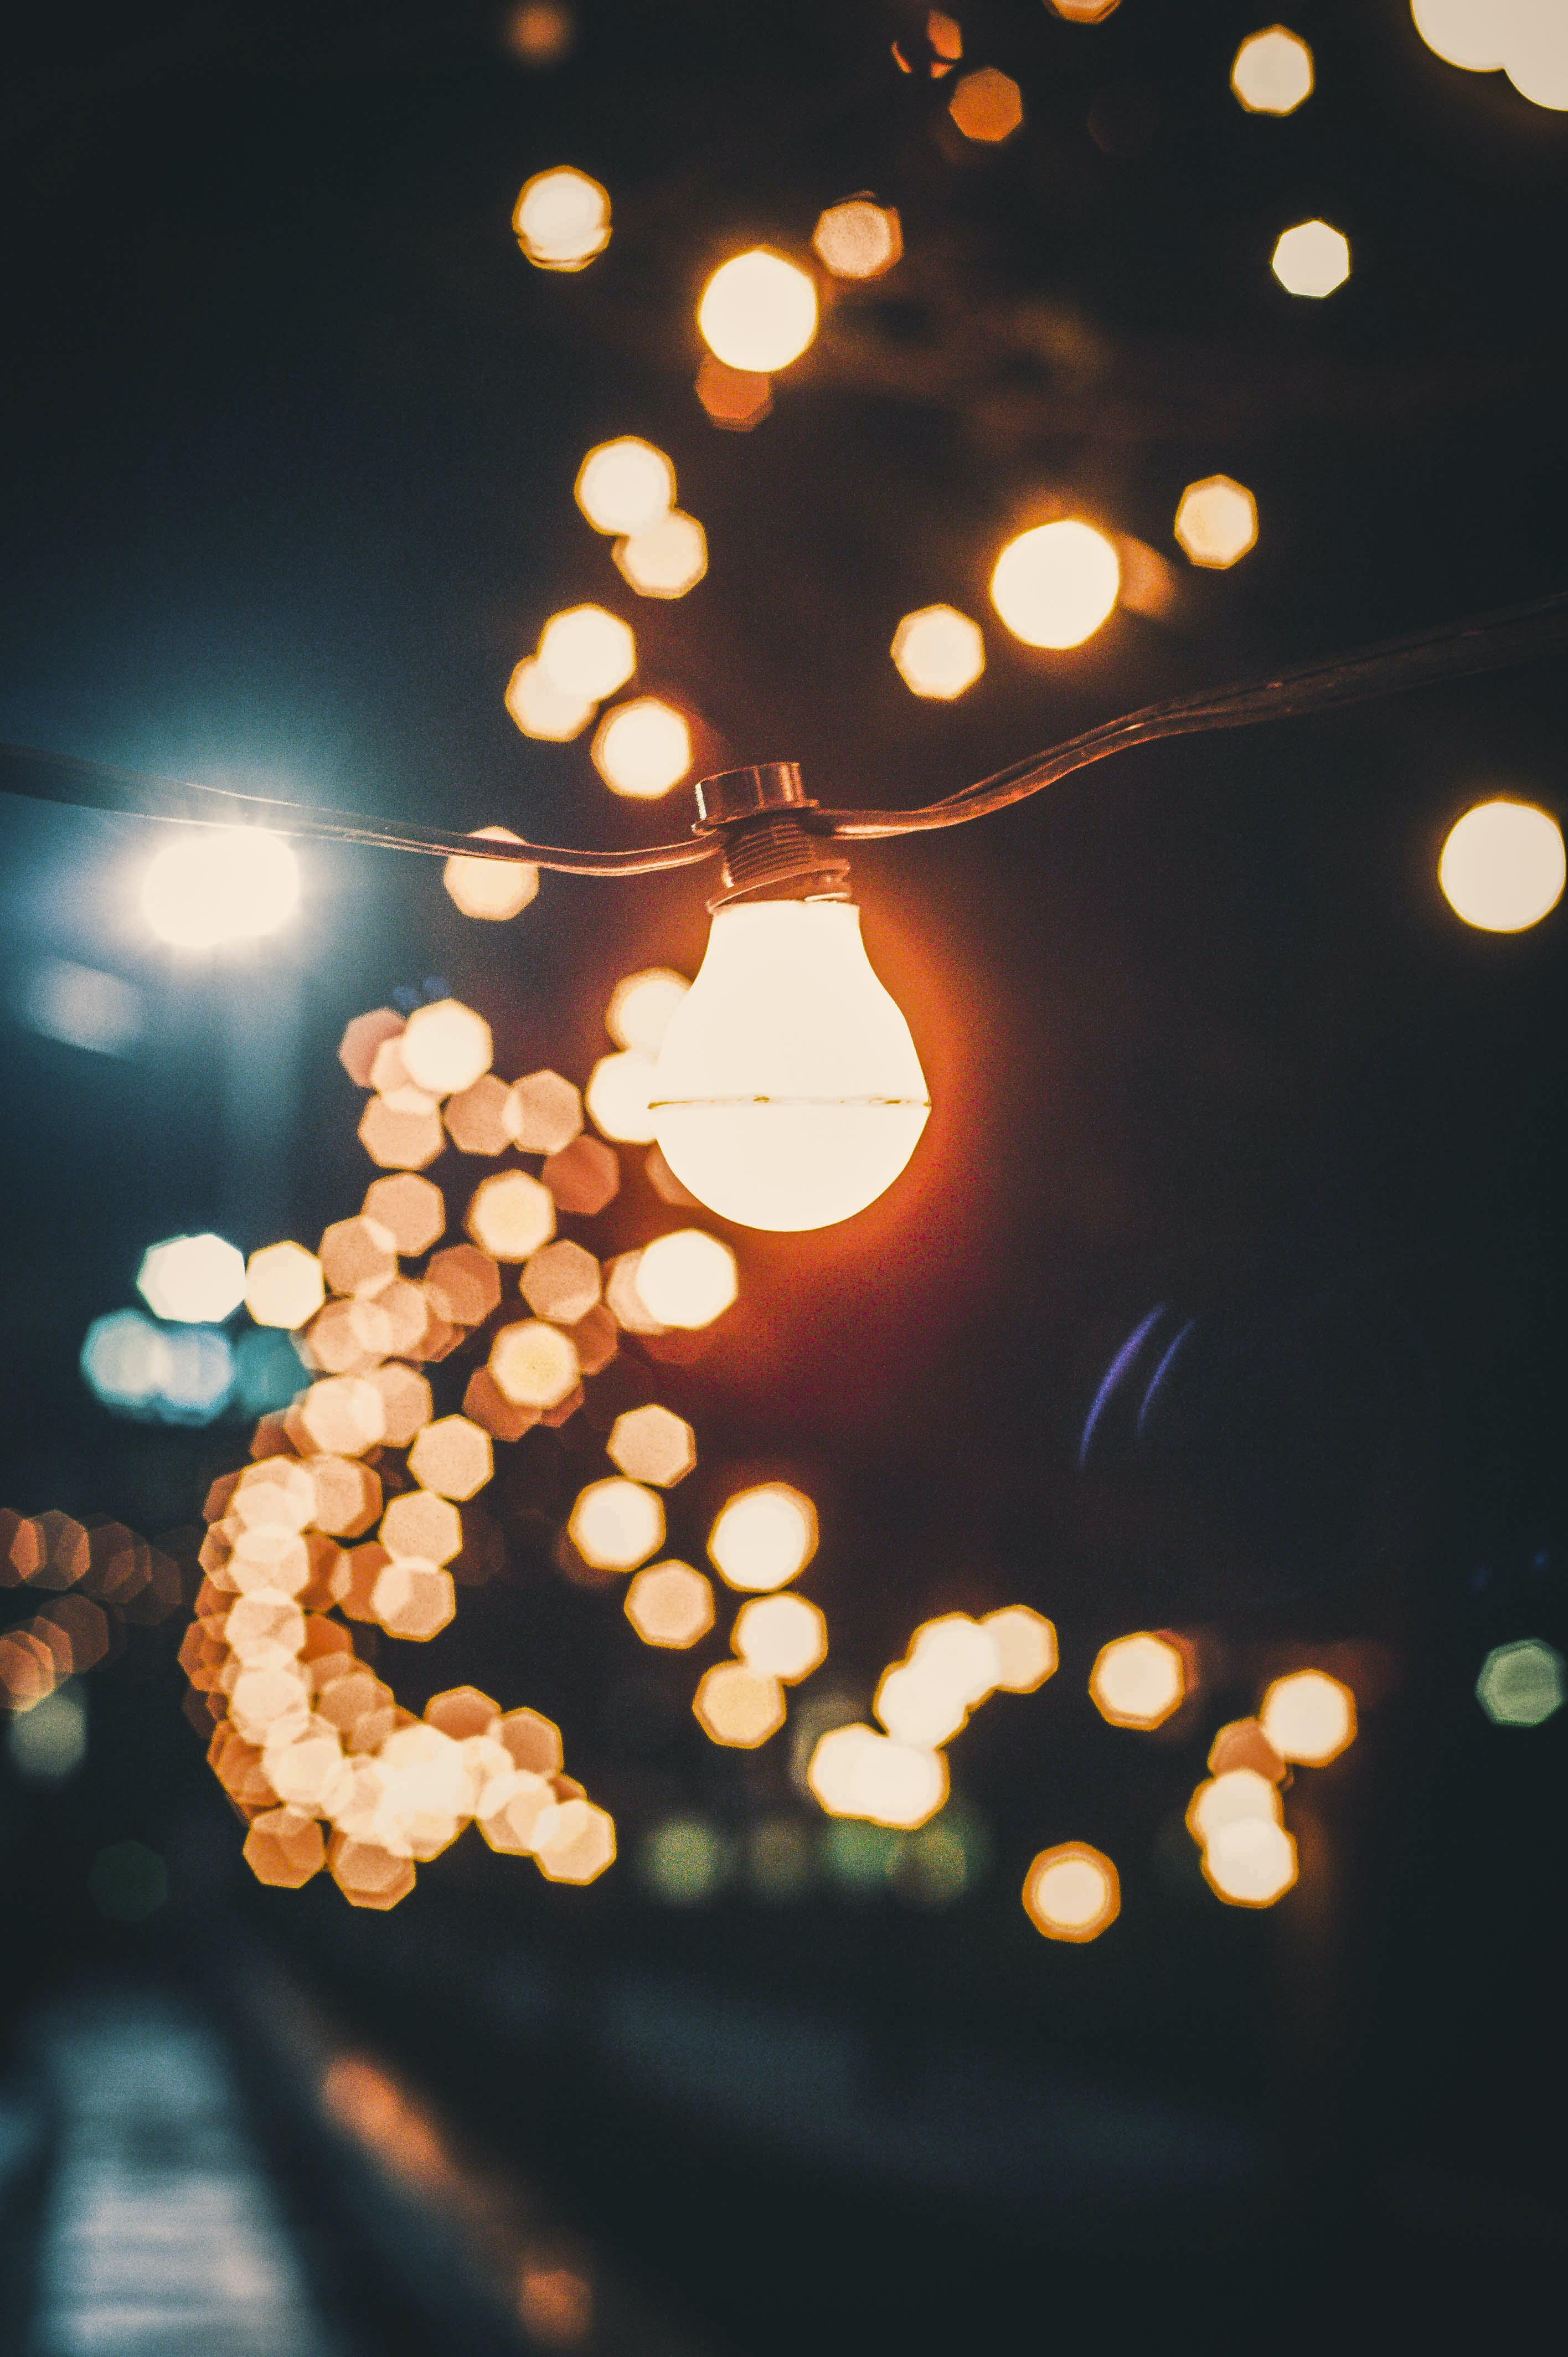 Free stock photo of lights, night, dark, abstract